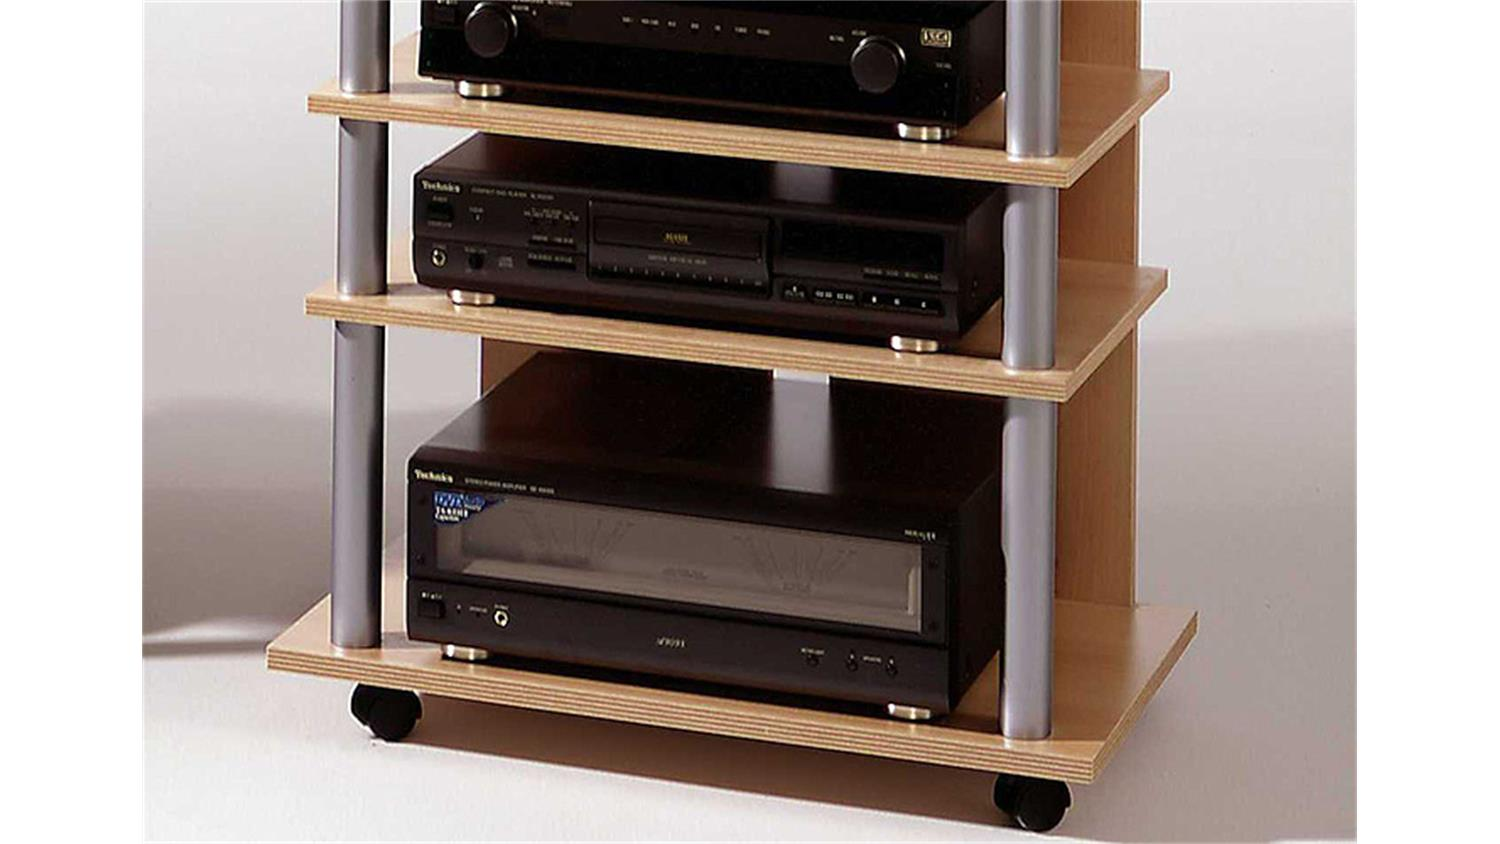 Hifi Regal Wandmontage Hifi Regal Latest Hifi Regal With Hifi Regal Trendy Hifi